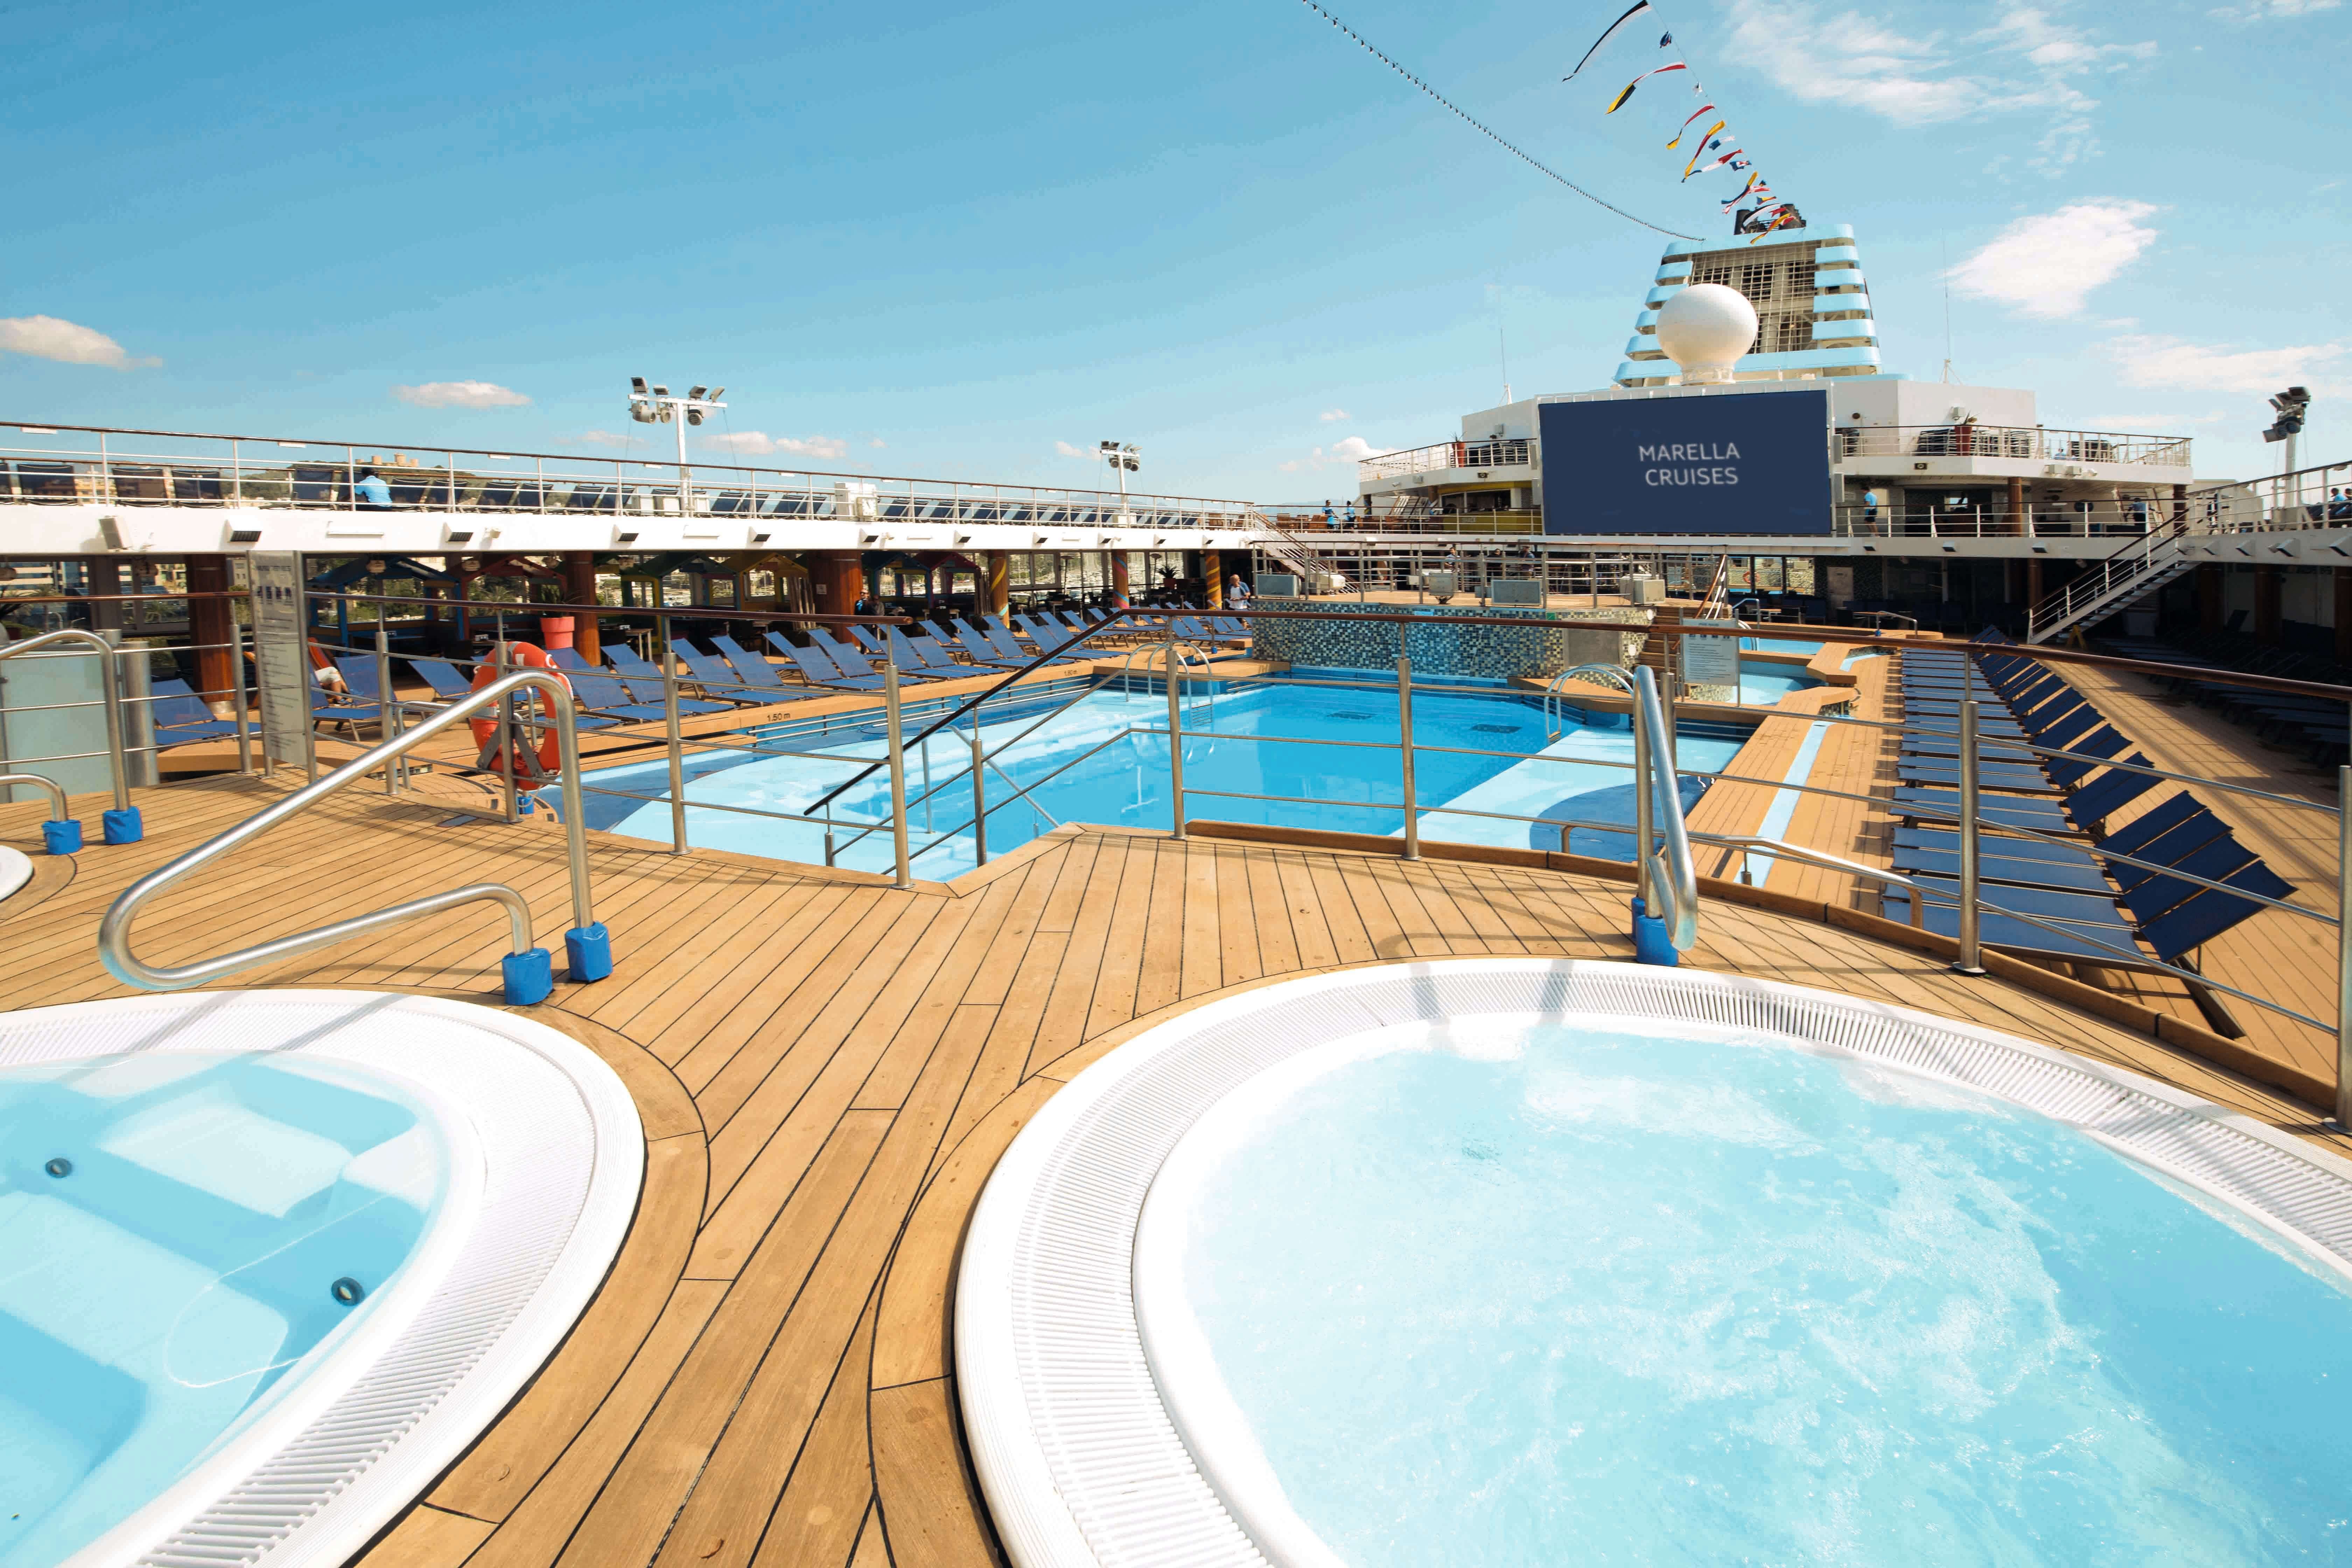 An image of Marella Explorer 2's main pool area, with a swimming pool and hot tubs